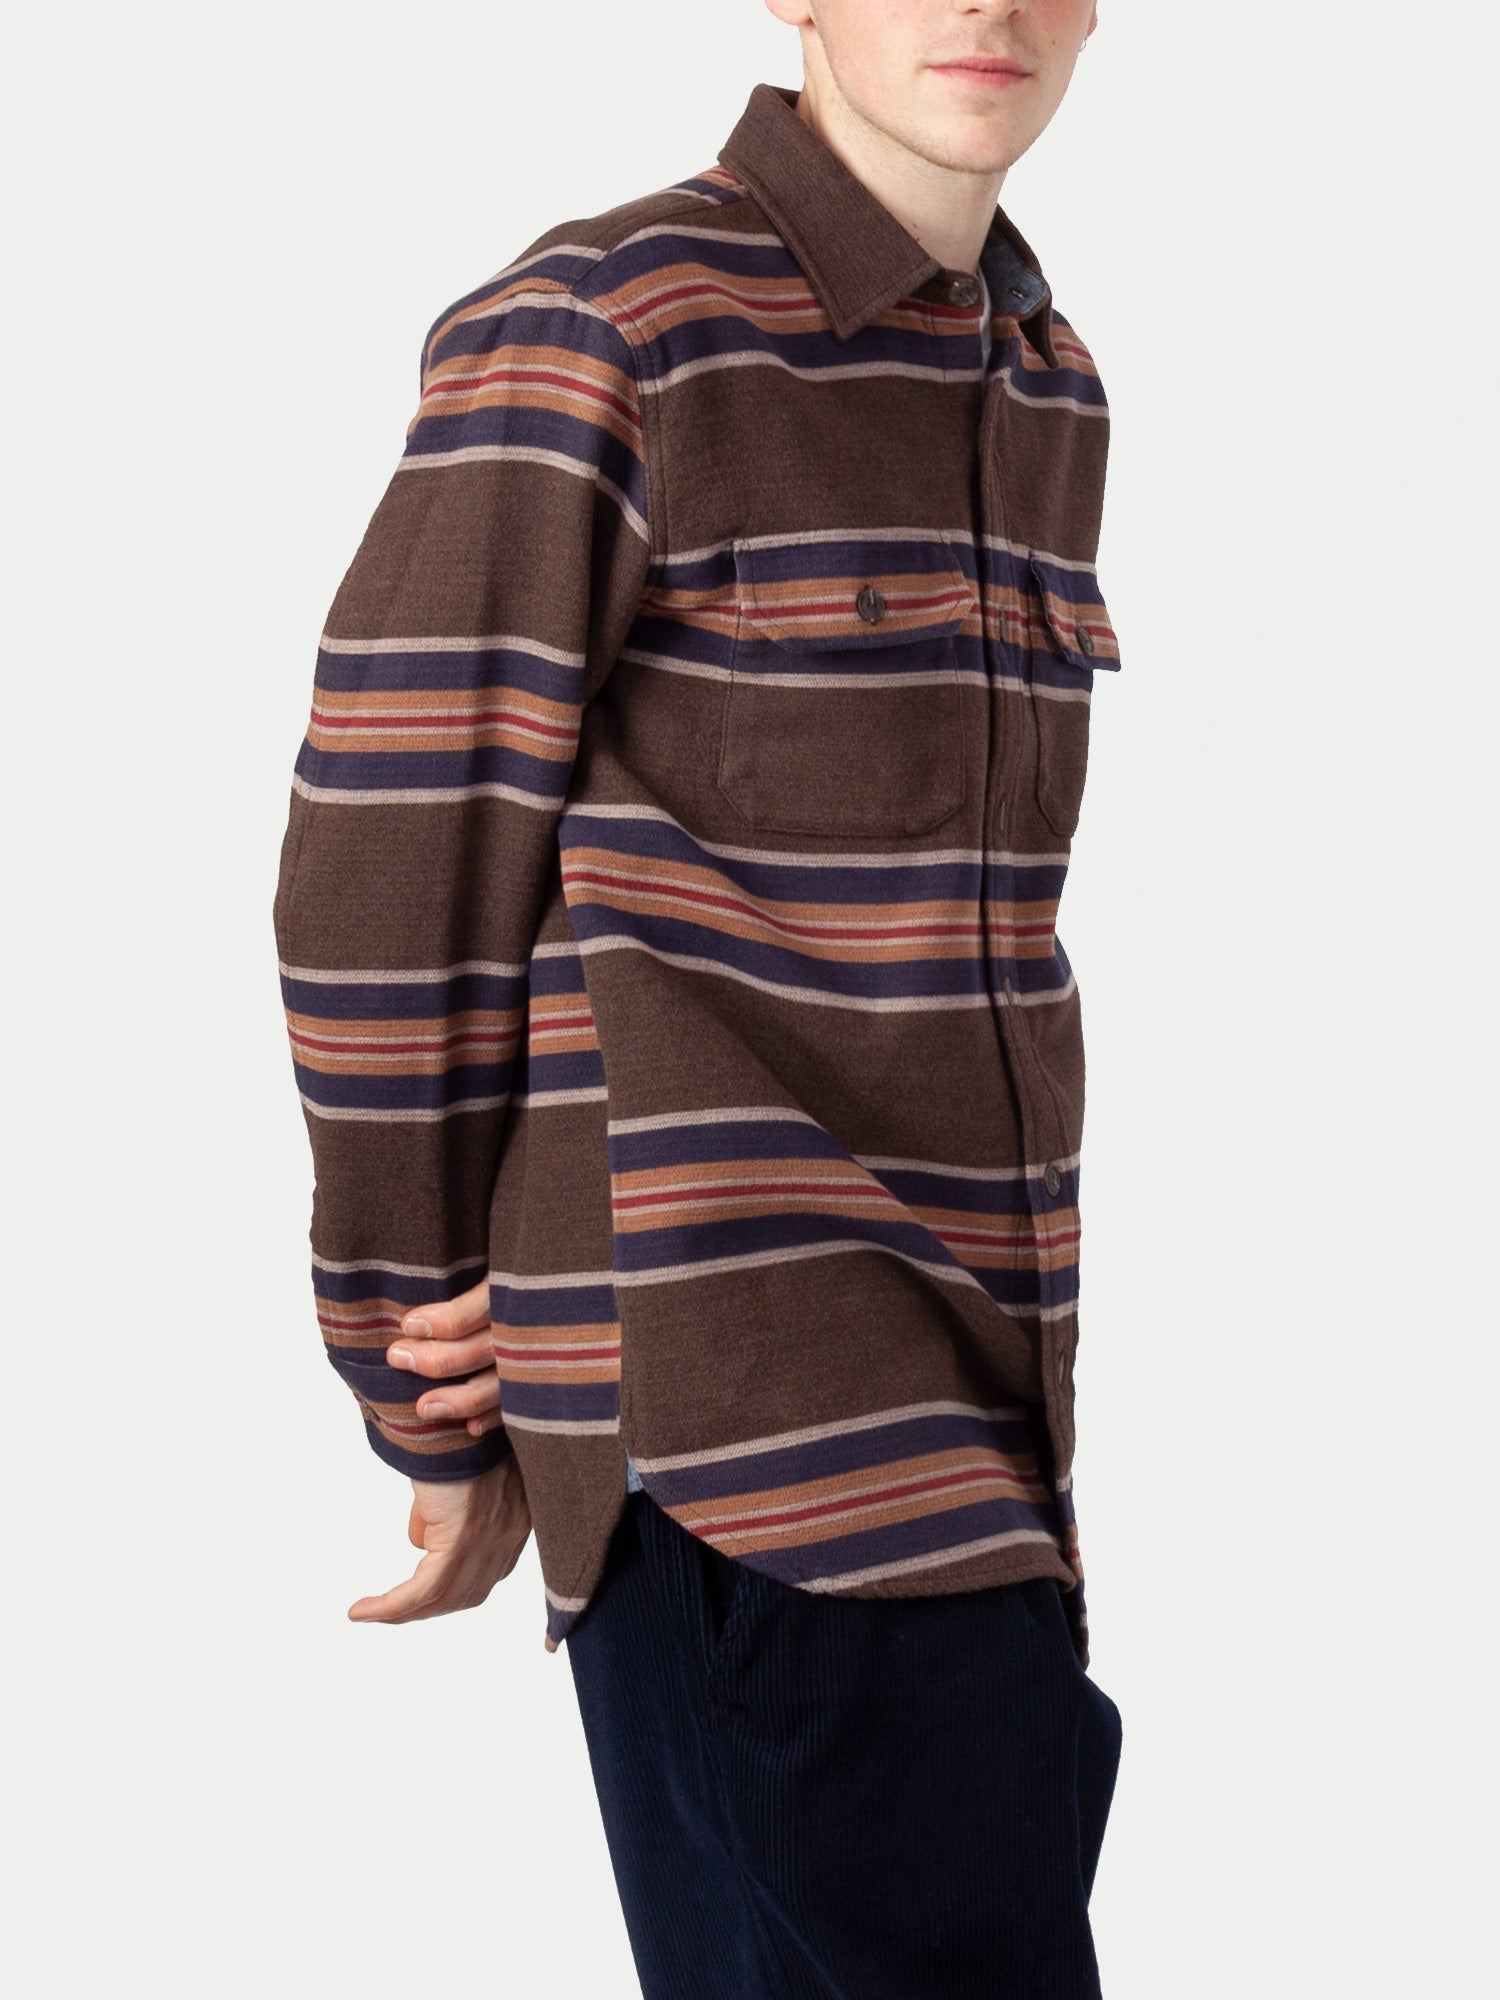 Pendleton Blanket Stripe Overshirt (San Miguel Brown Stripe)